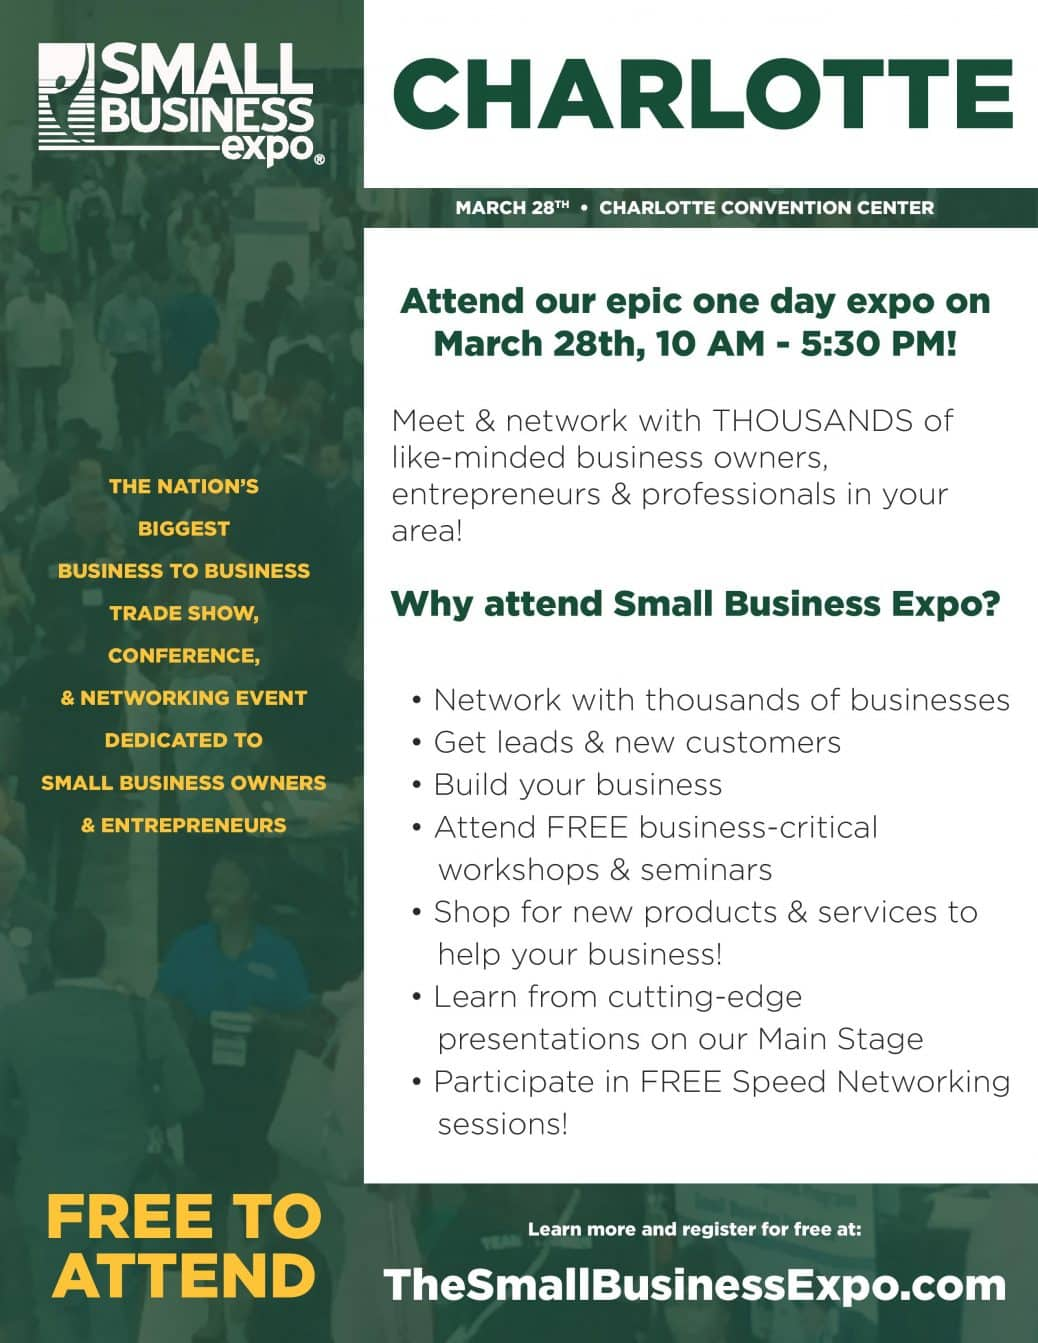 Small Business Expo- Charlotte - Professional Woman's